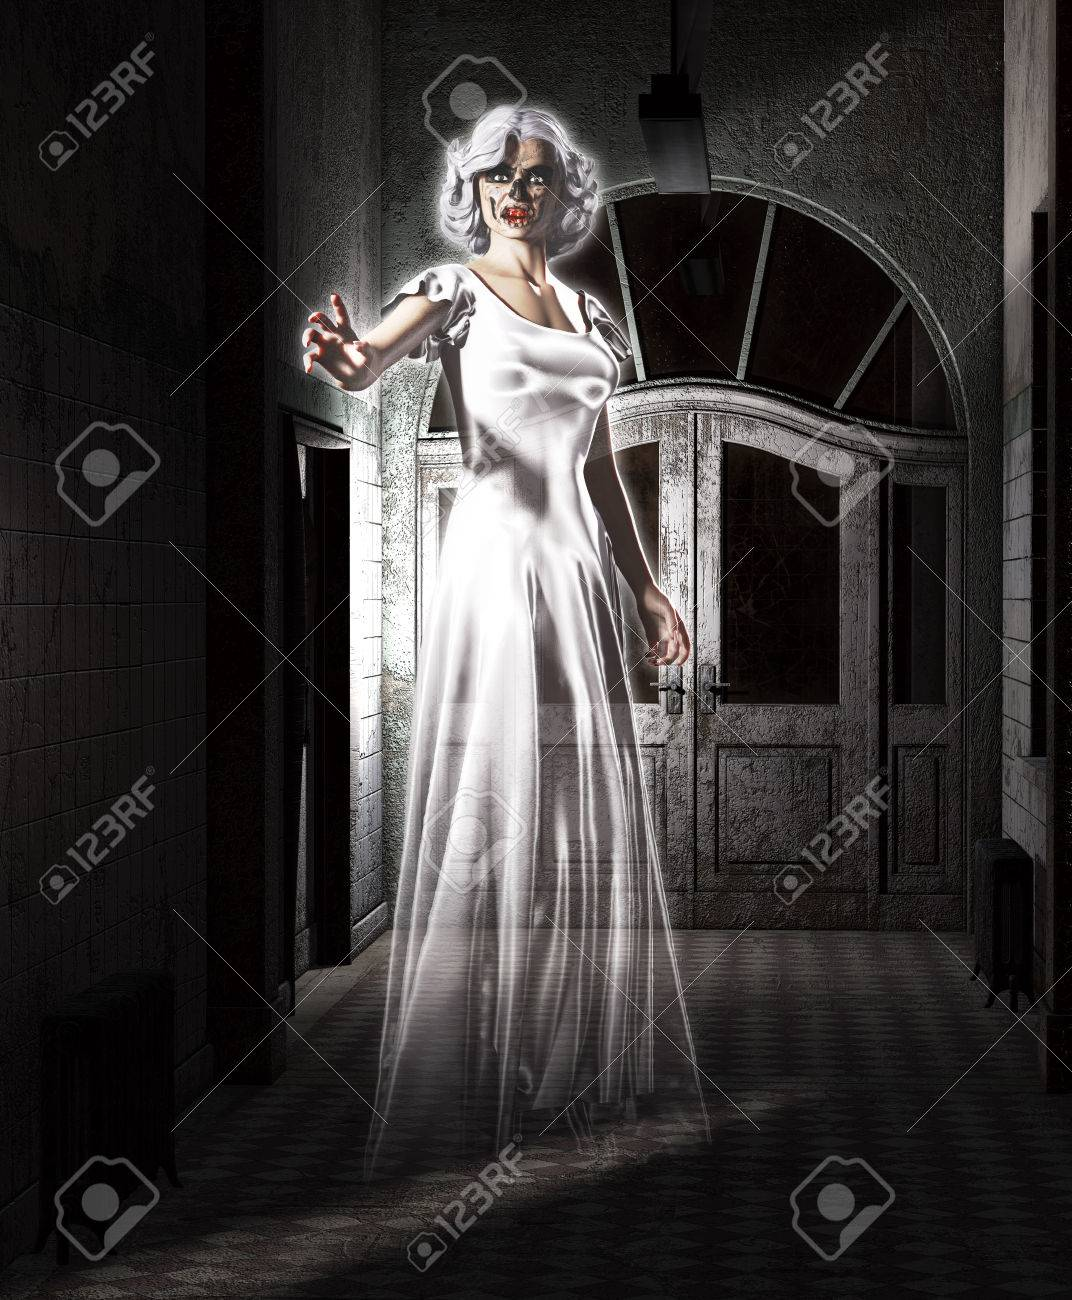 Female Ghost Floating In An Abandoned Insane Asylum Stock Photo Picture And Royalty Free Image Image 55111969